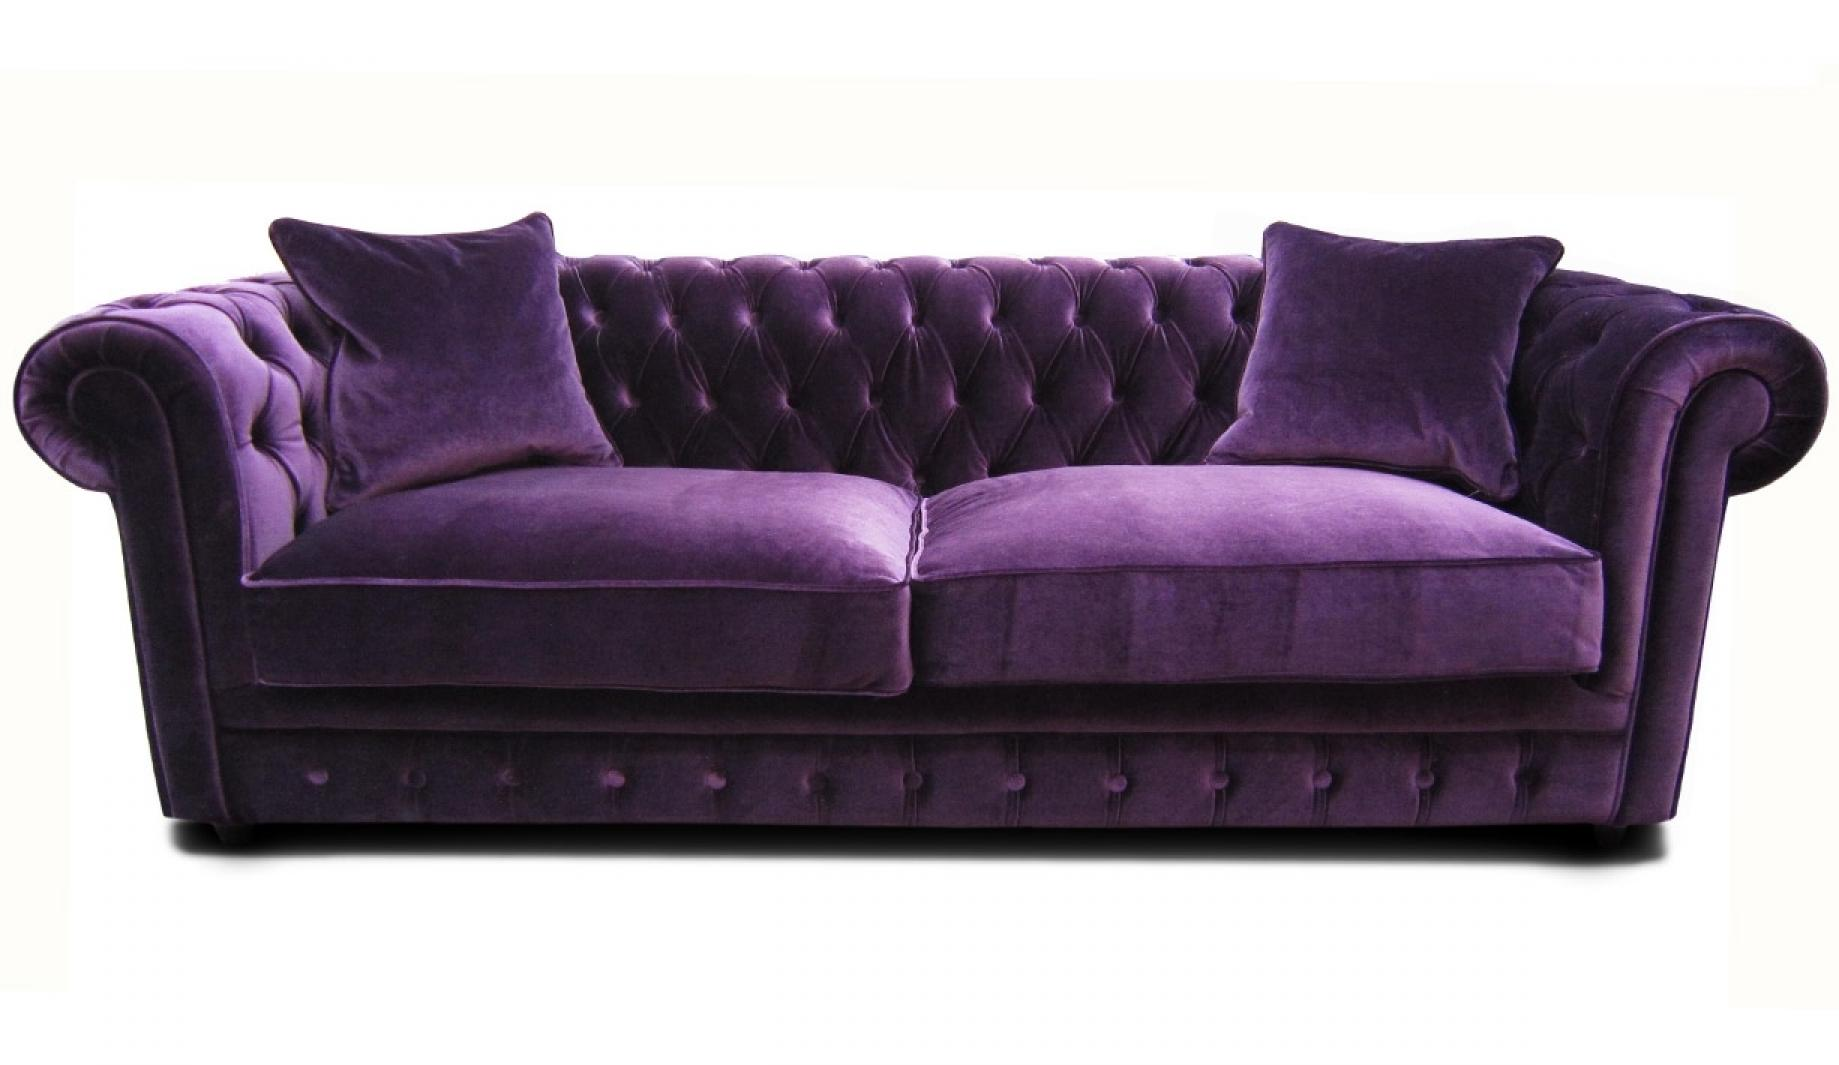 Chesterfield vintage sofa sir chesterfield ledermbel for Canape chesterfield pas cher